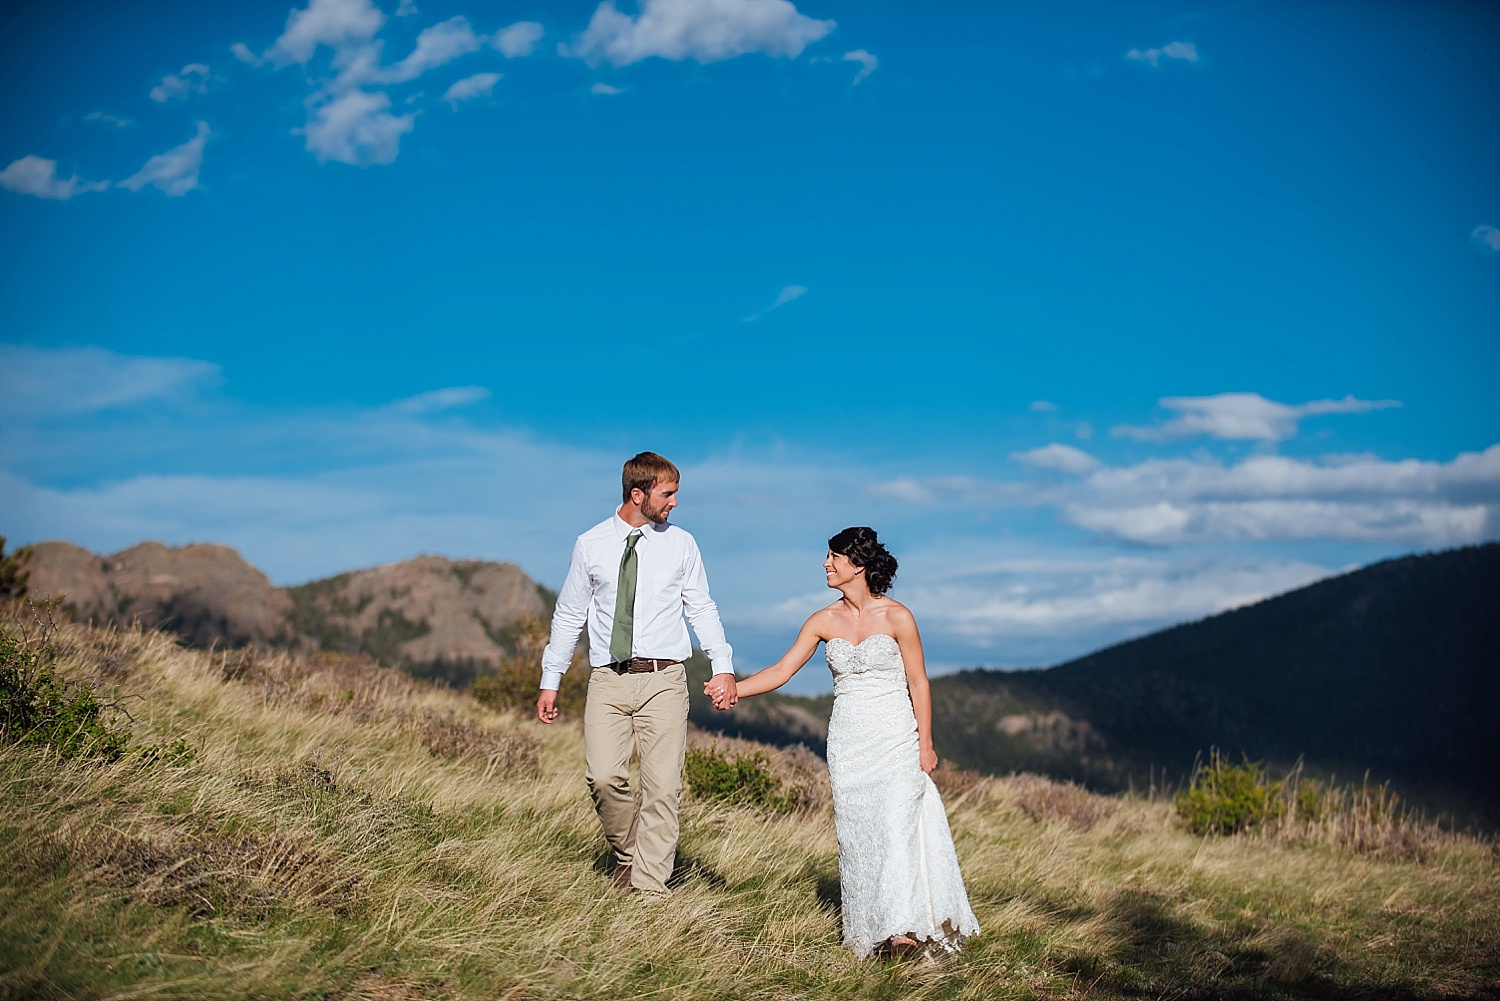 I love these Colorado blue skies and rocky mountains especially for a wedding shoot! Photo by Maddie Mae Photography